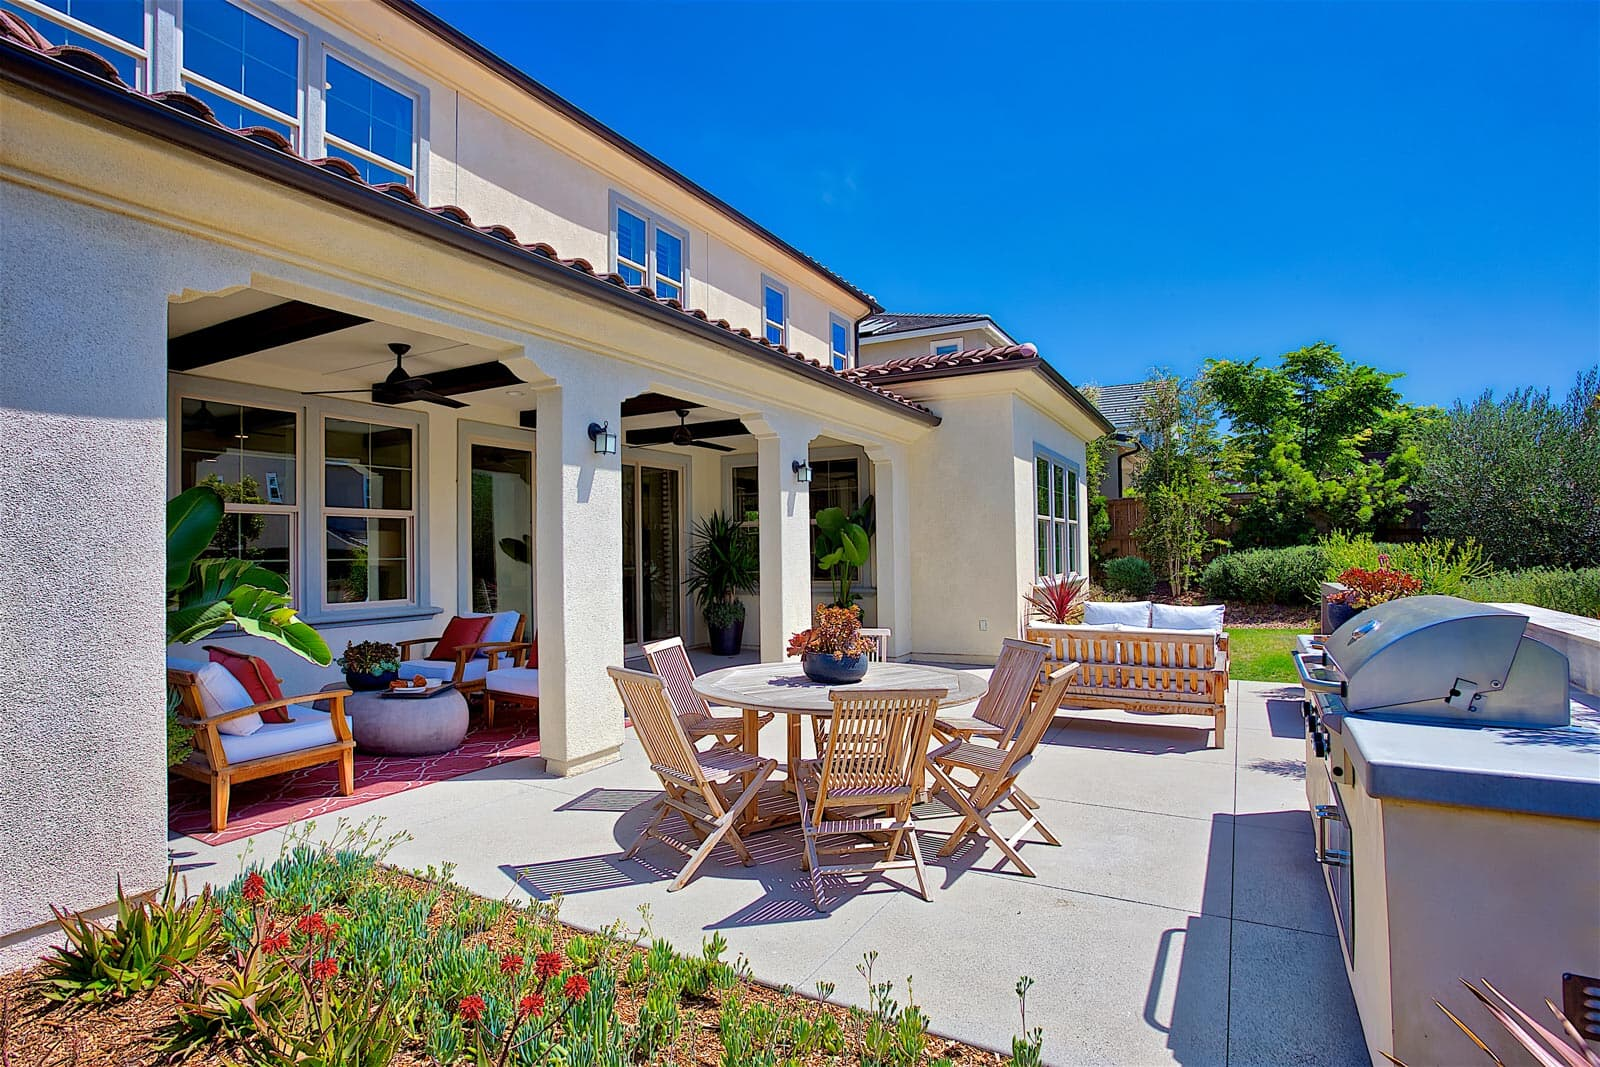 Residence 2 Back Yard | Haciendas at the Village of Escaya in Chula Vista, CA | Brookfield Residential